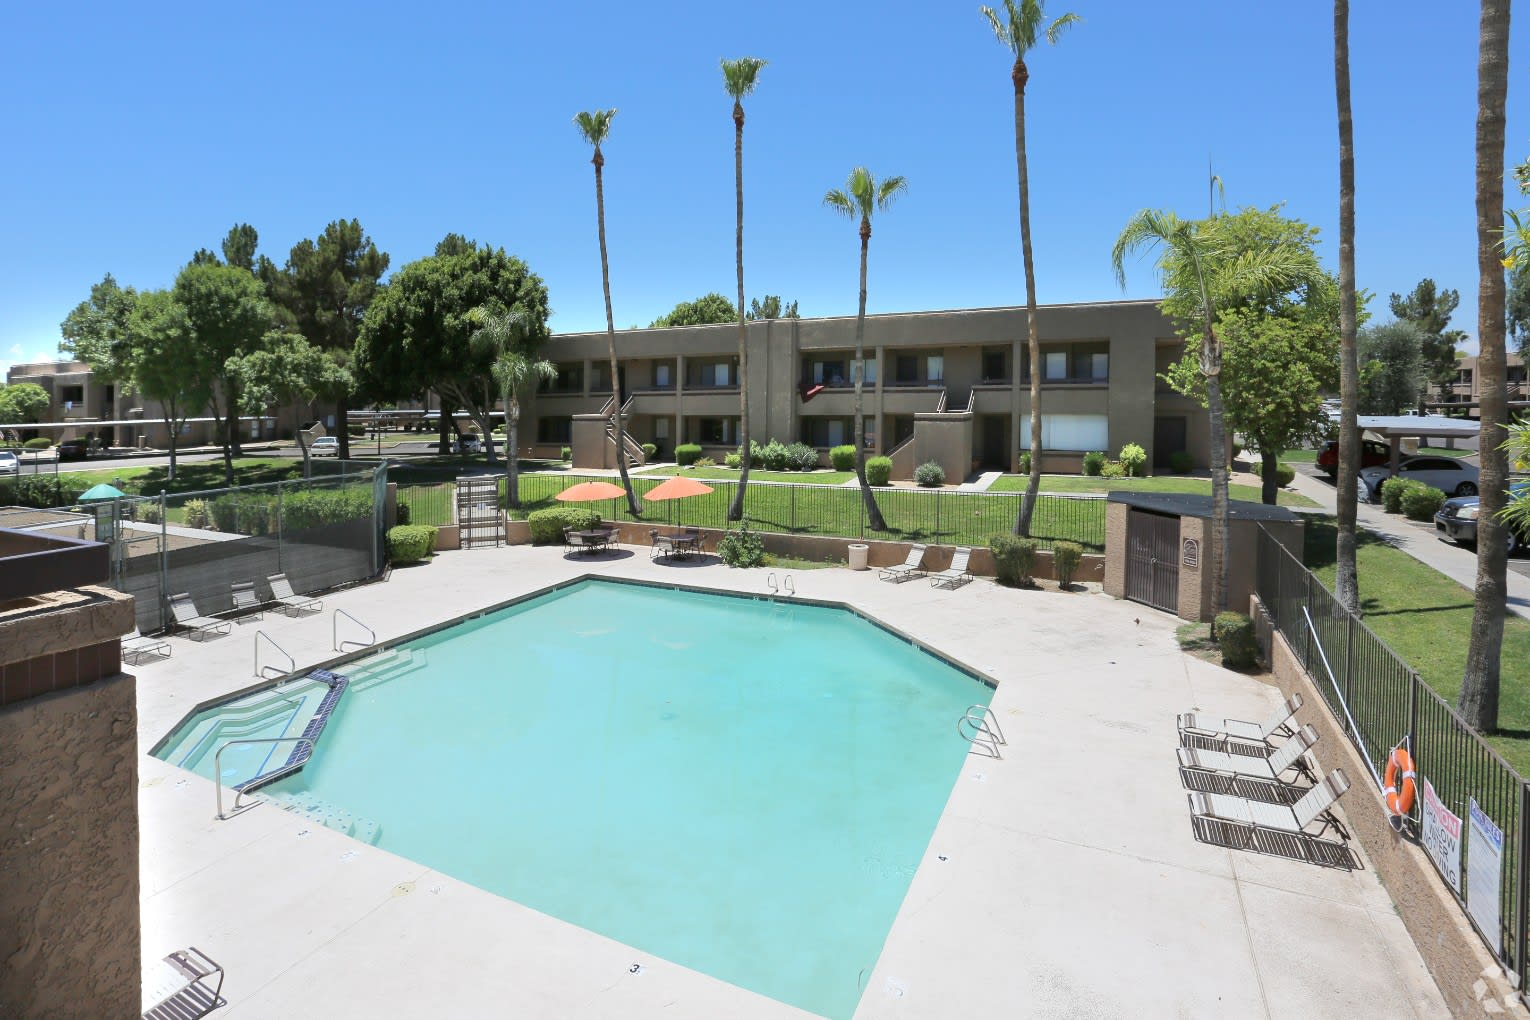 Pool and Pool Patio at Avalon Hills Apartments in Phoenix AZ